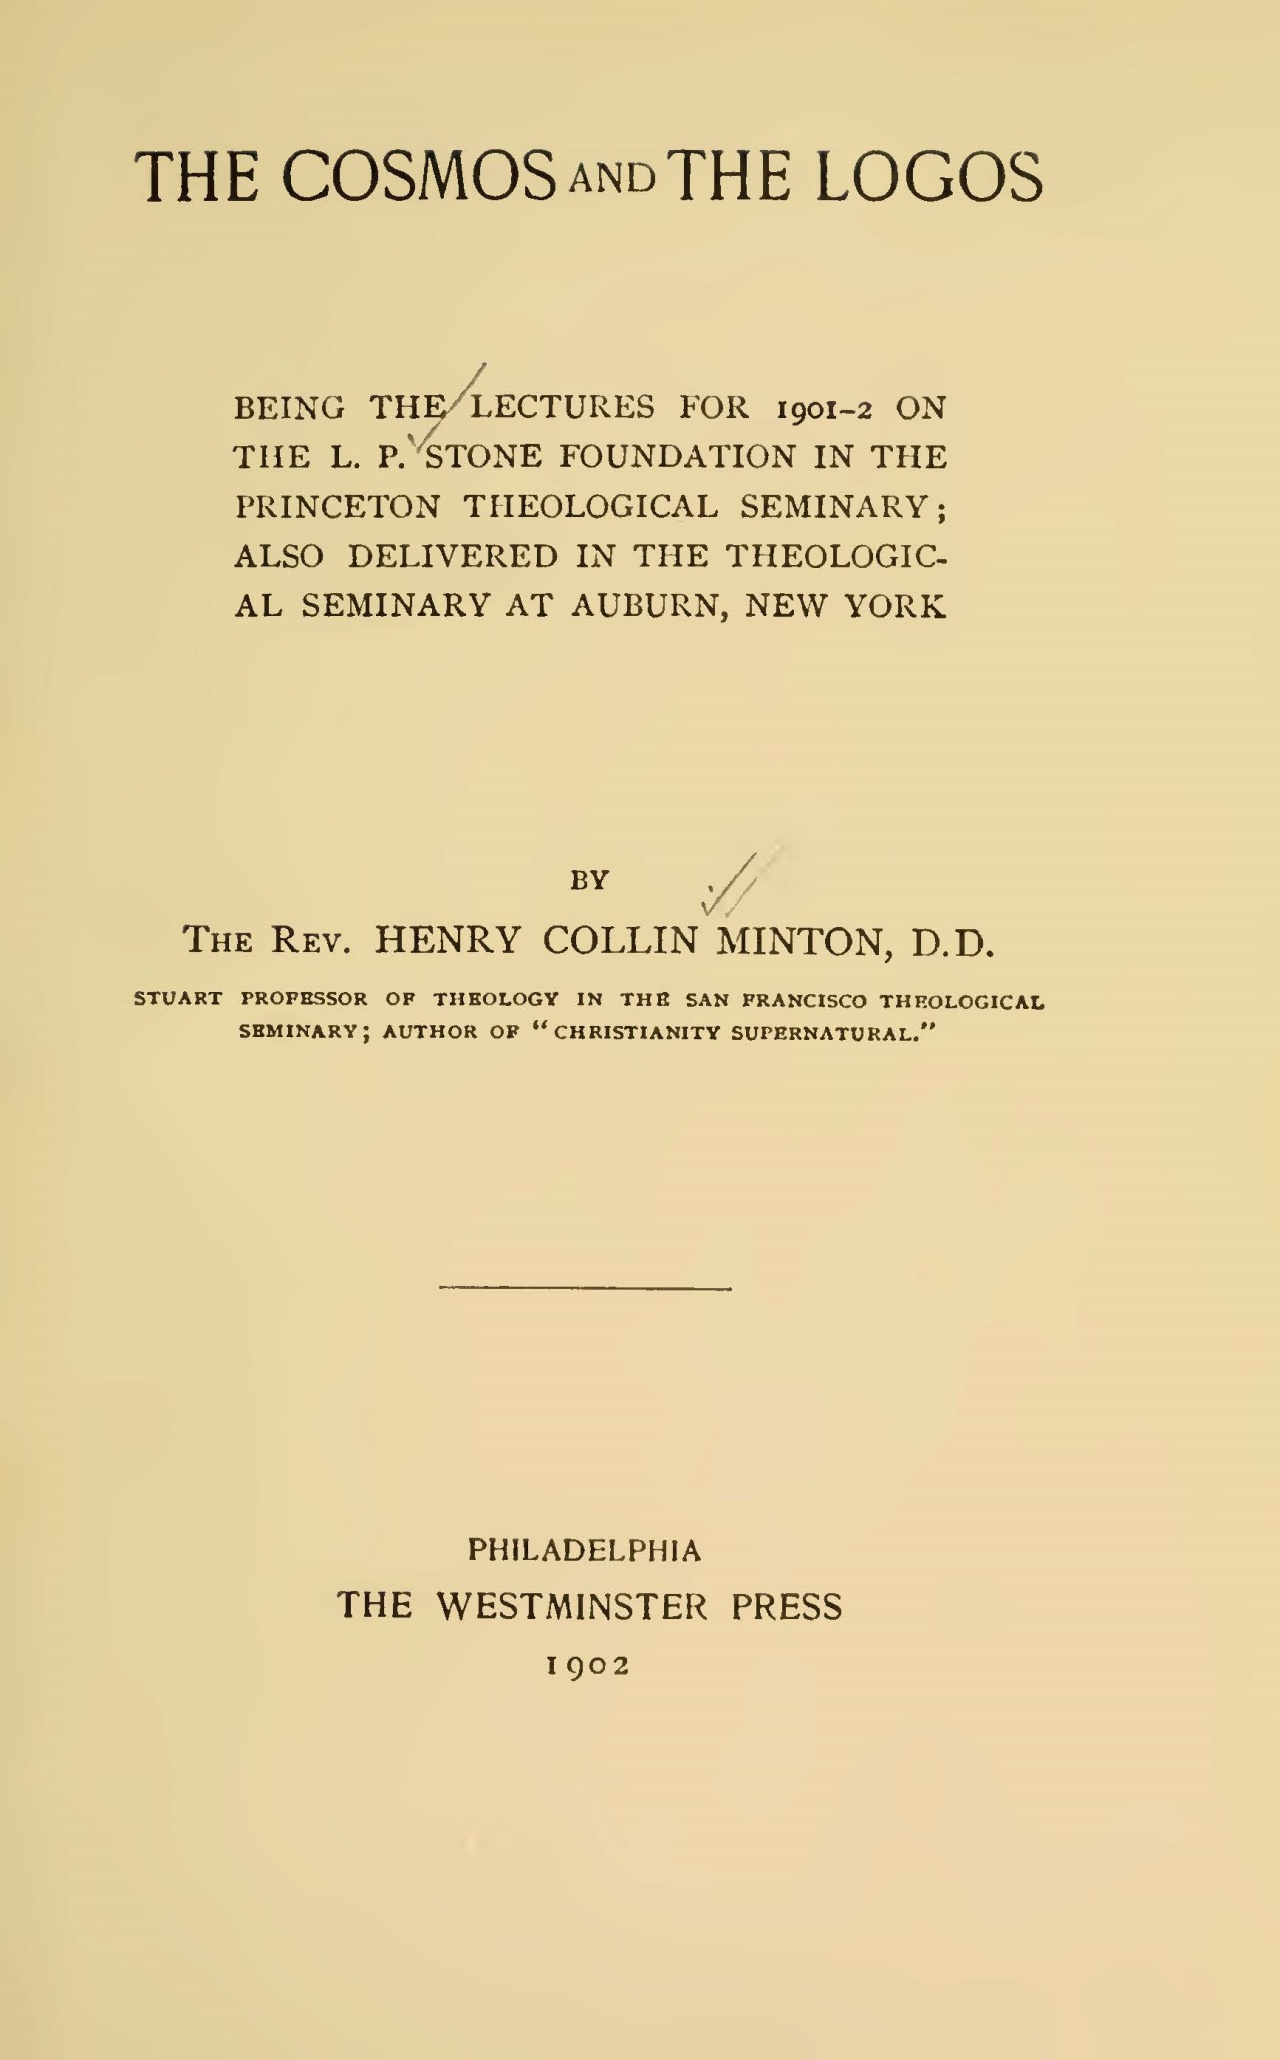 Minton, Henry Collin, The Cosmos and the Logos Title Page.jpg